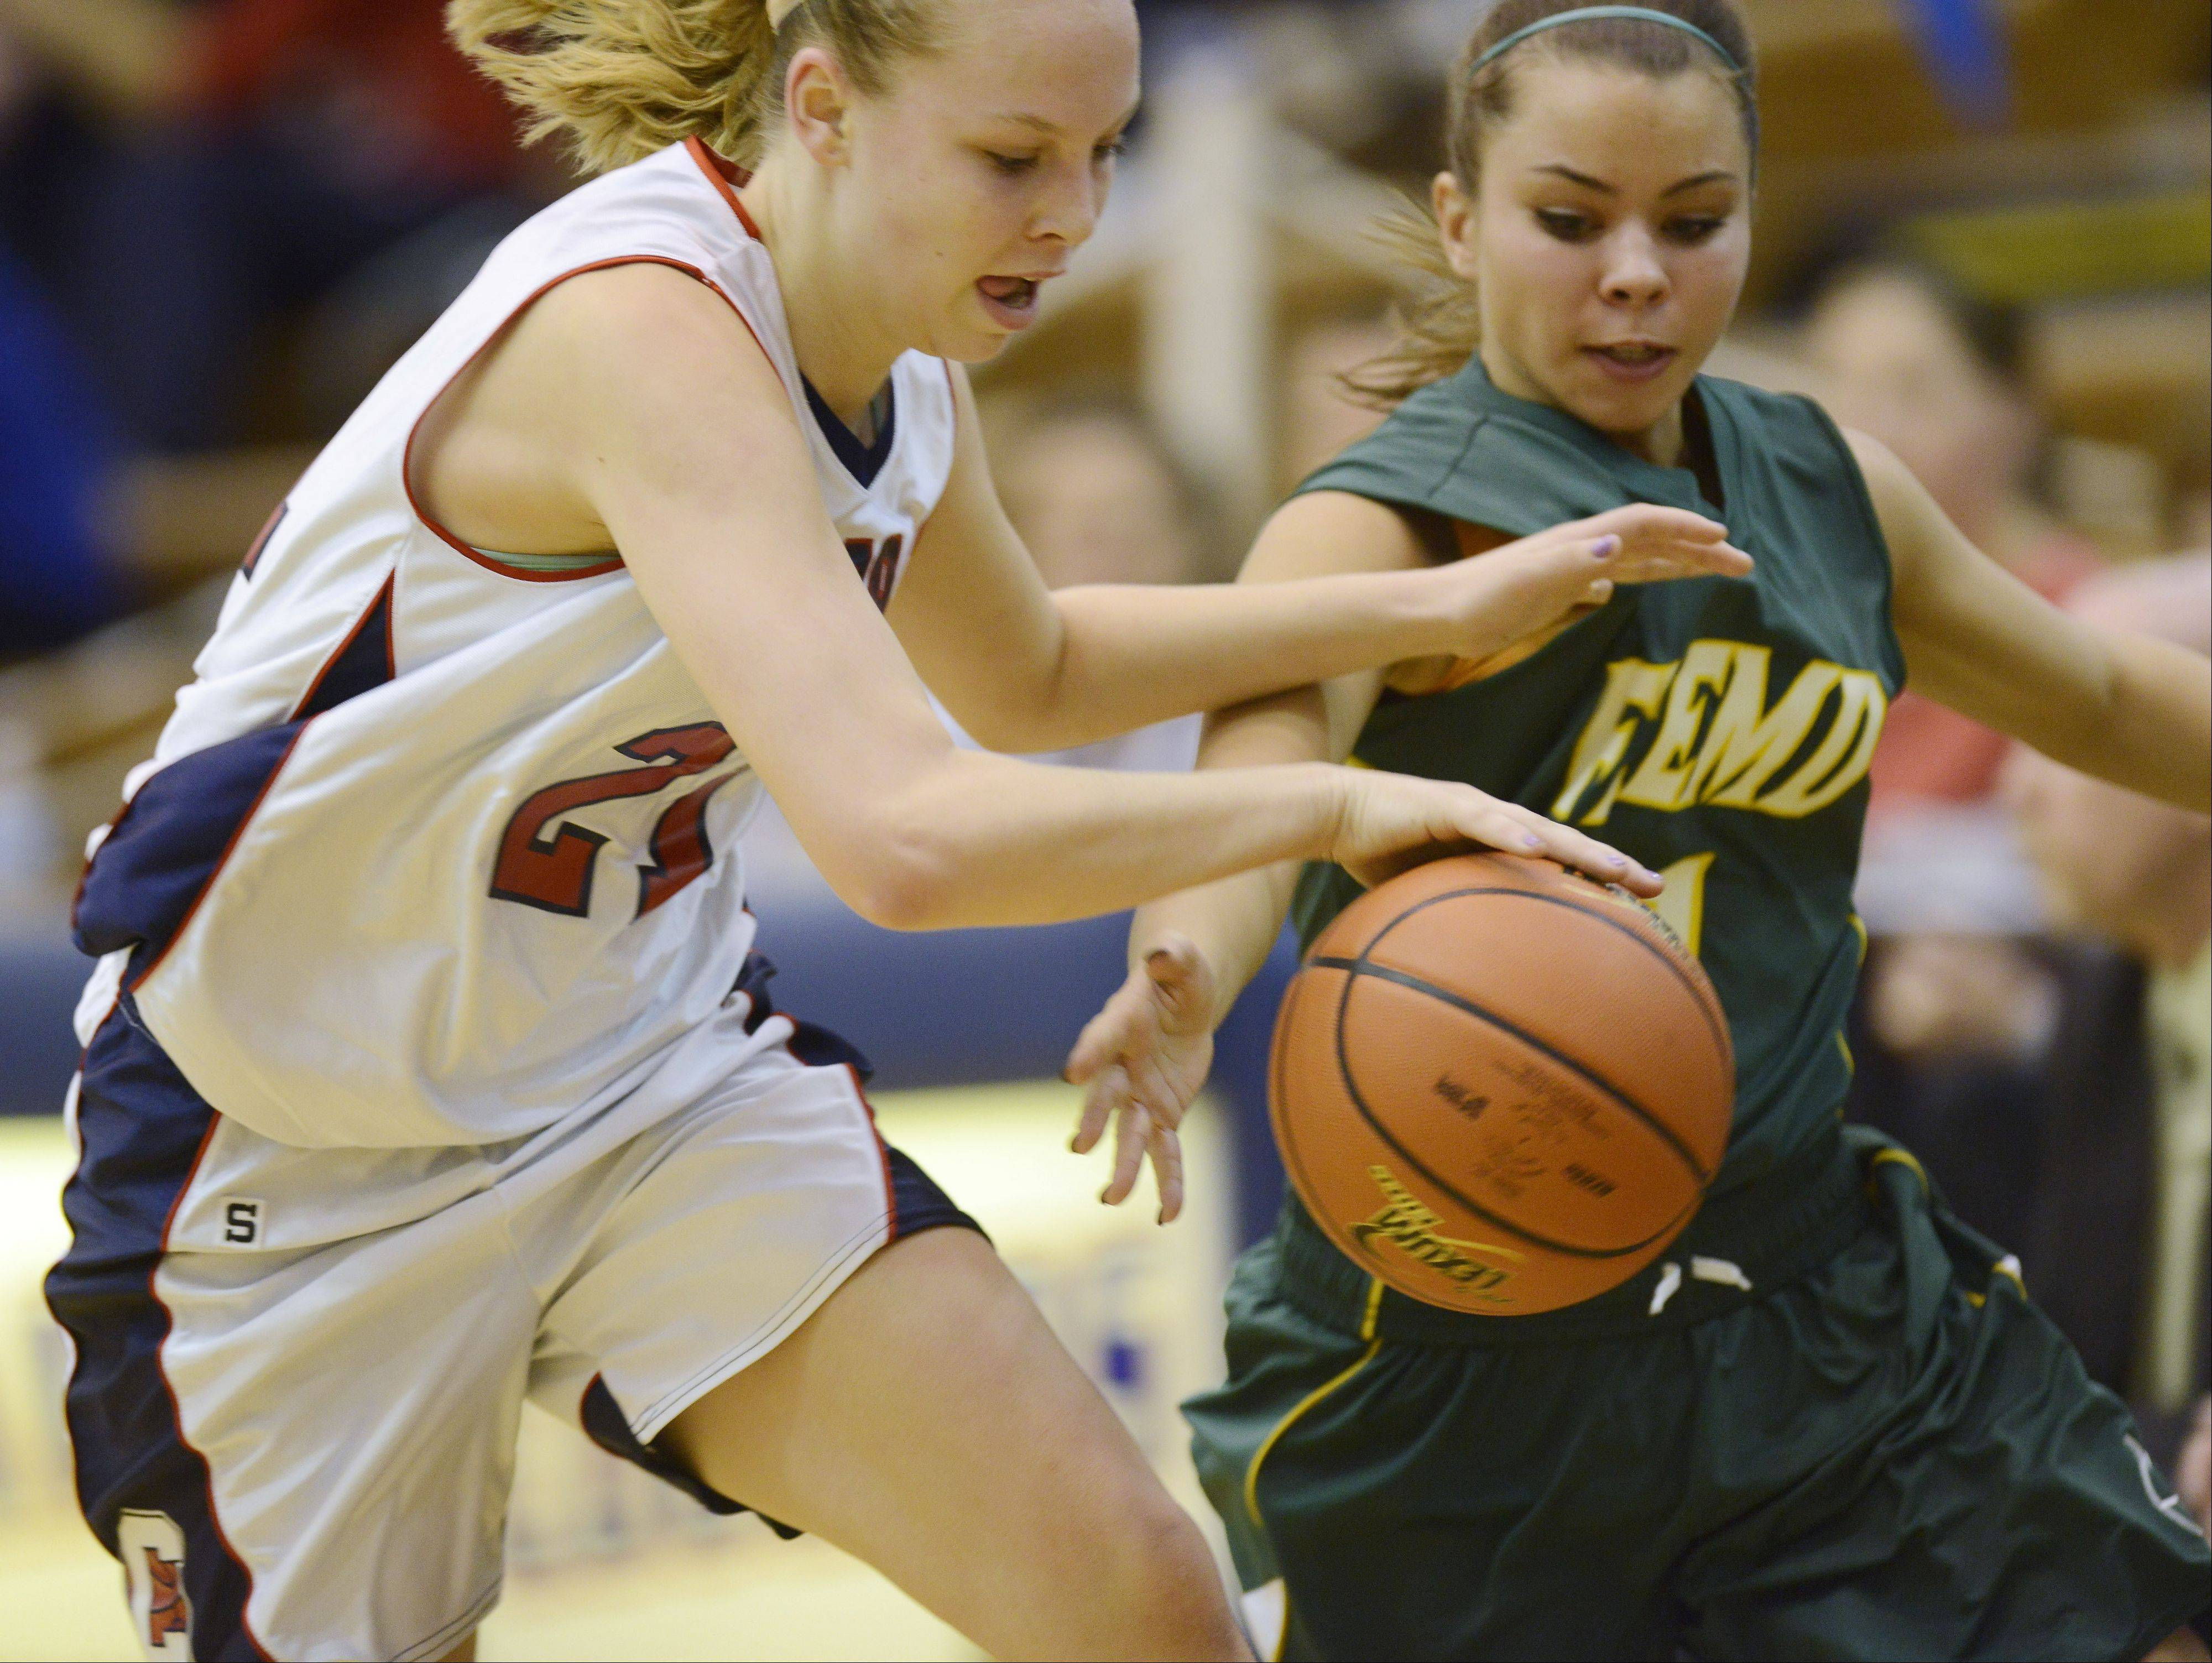 Conant's Katie Lomas, left, and Fremd's Catherine Ernst chase after a loose ball during Tuesday's game.